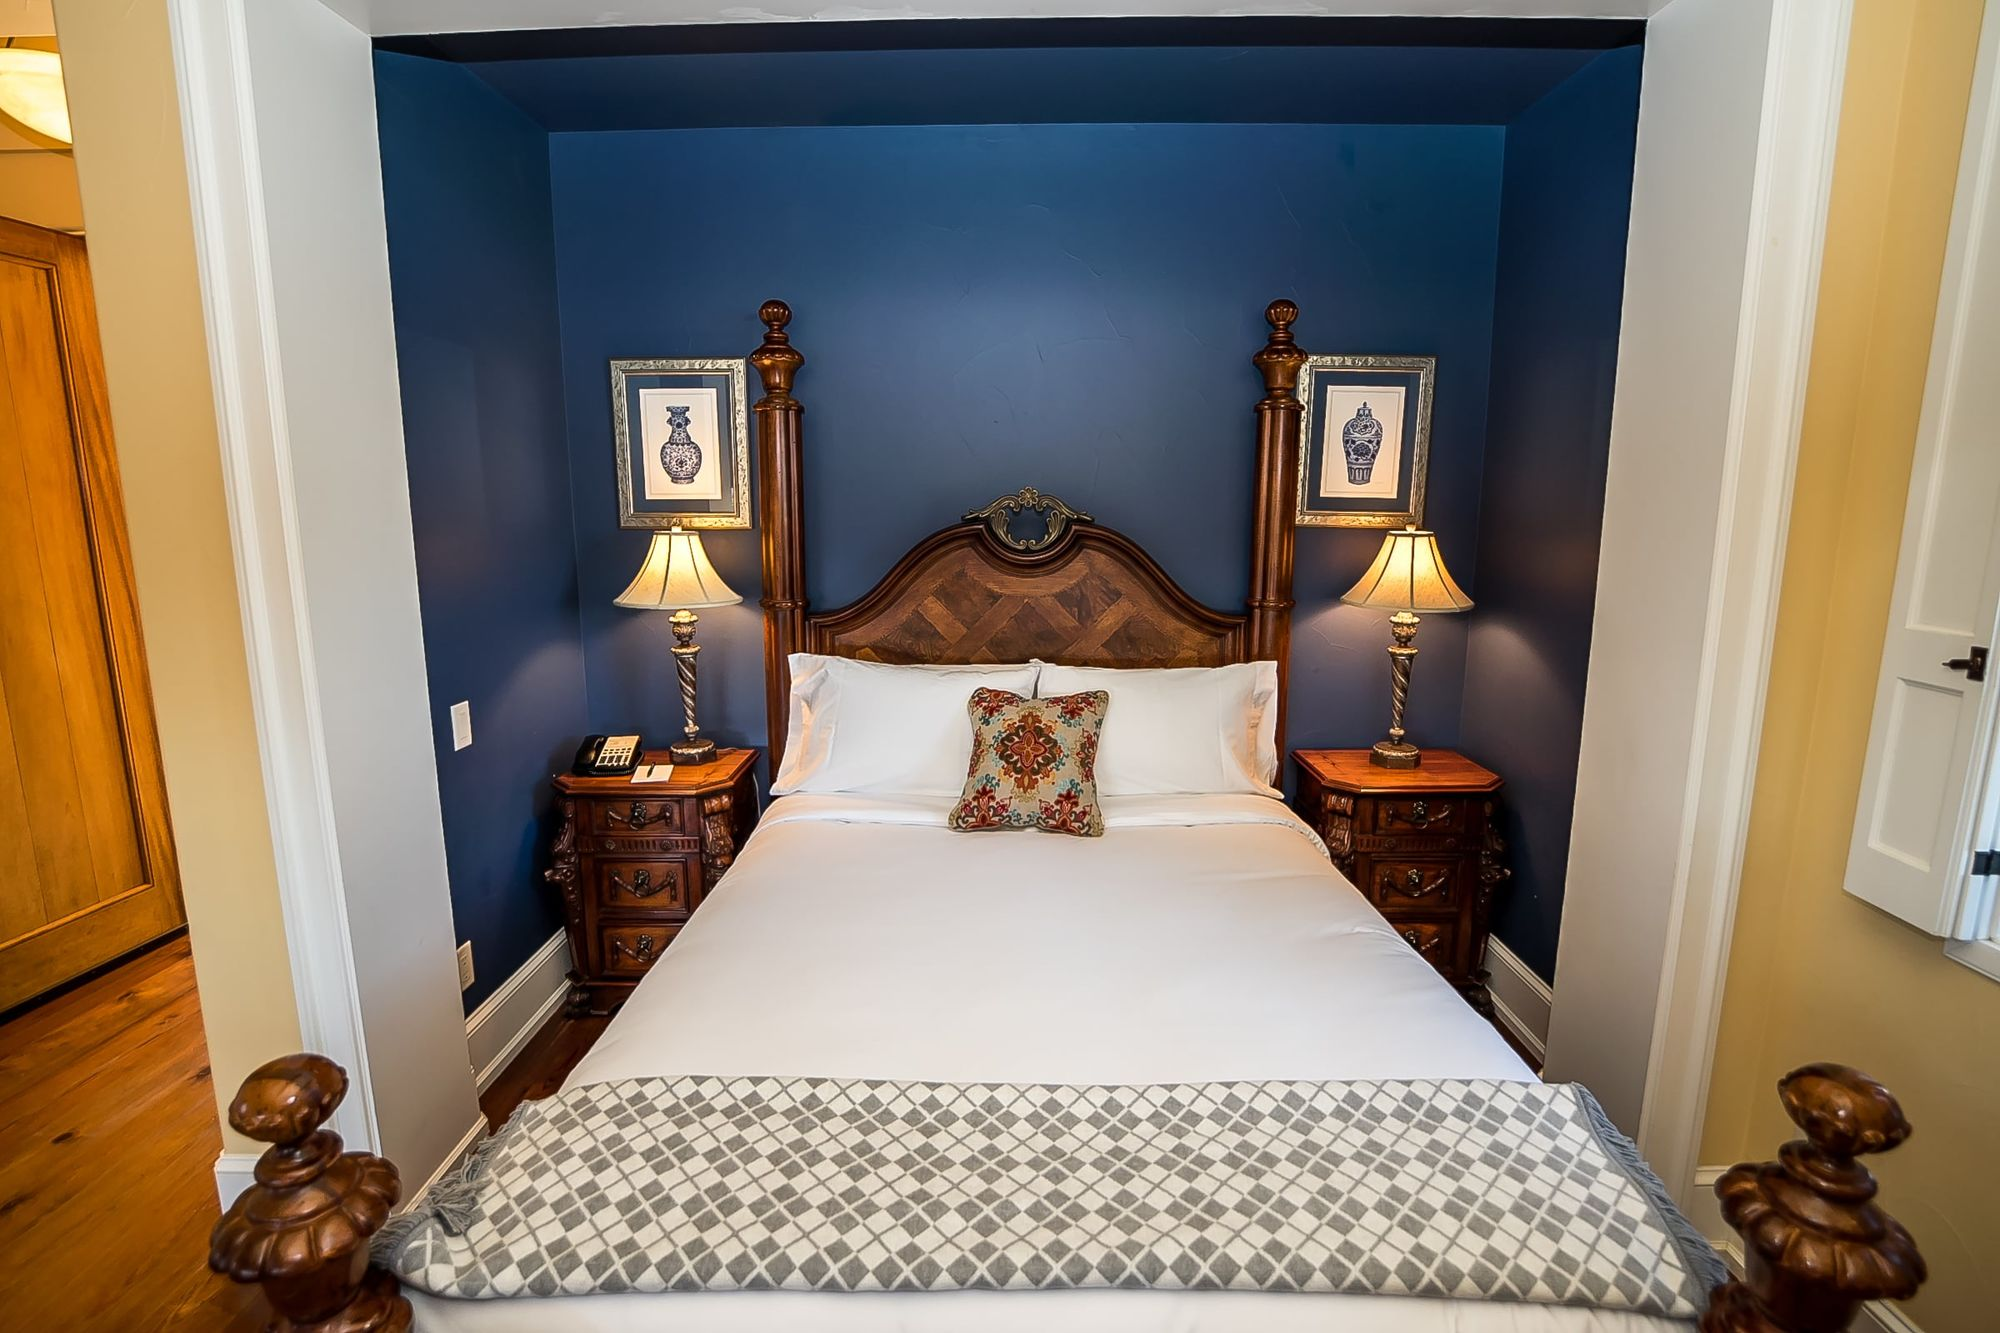 Bed made with white sheets with an accent pillow set in a niche painted dark blue